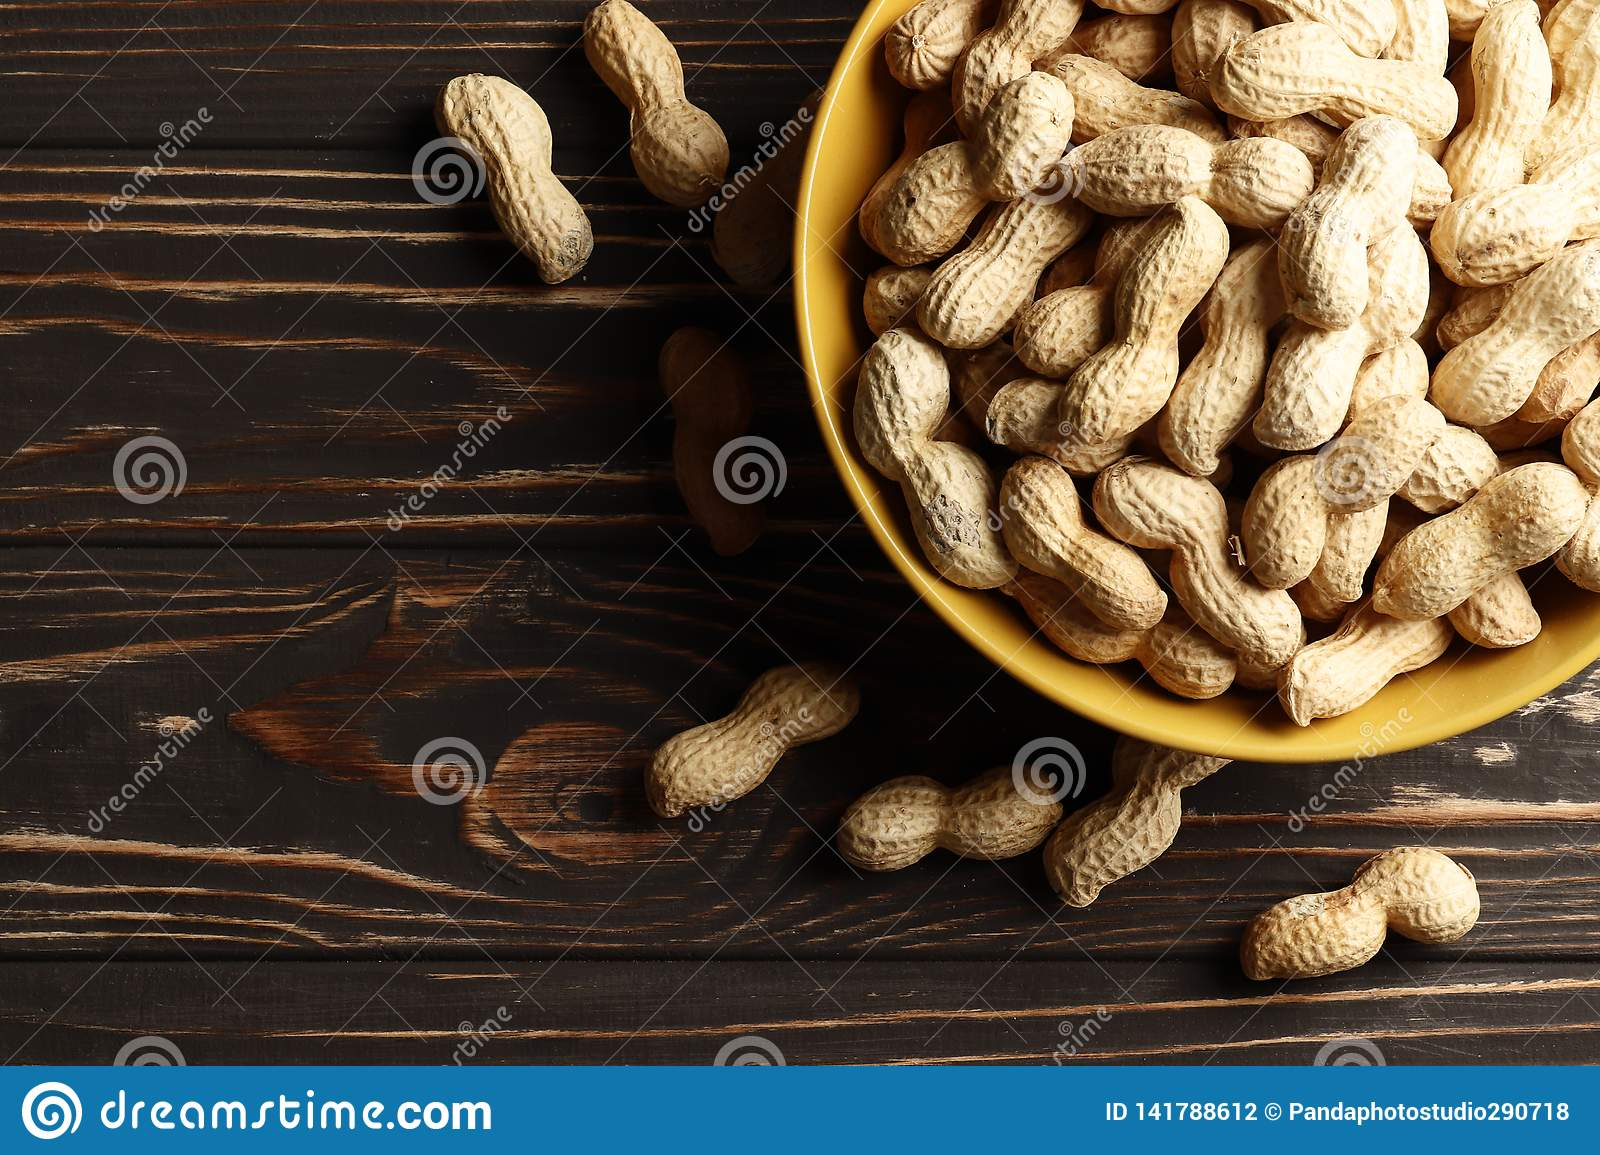 Рeanuts on wooden background